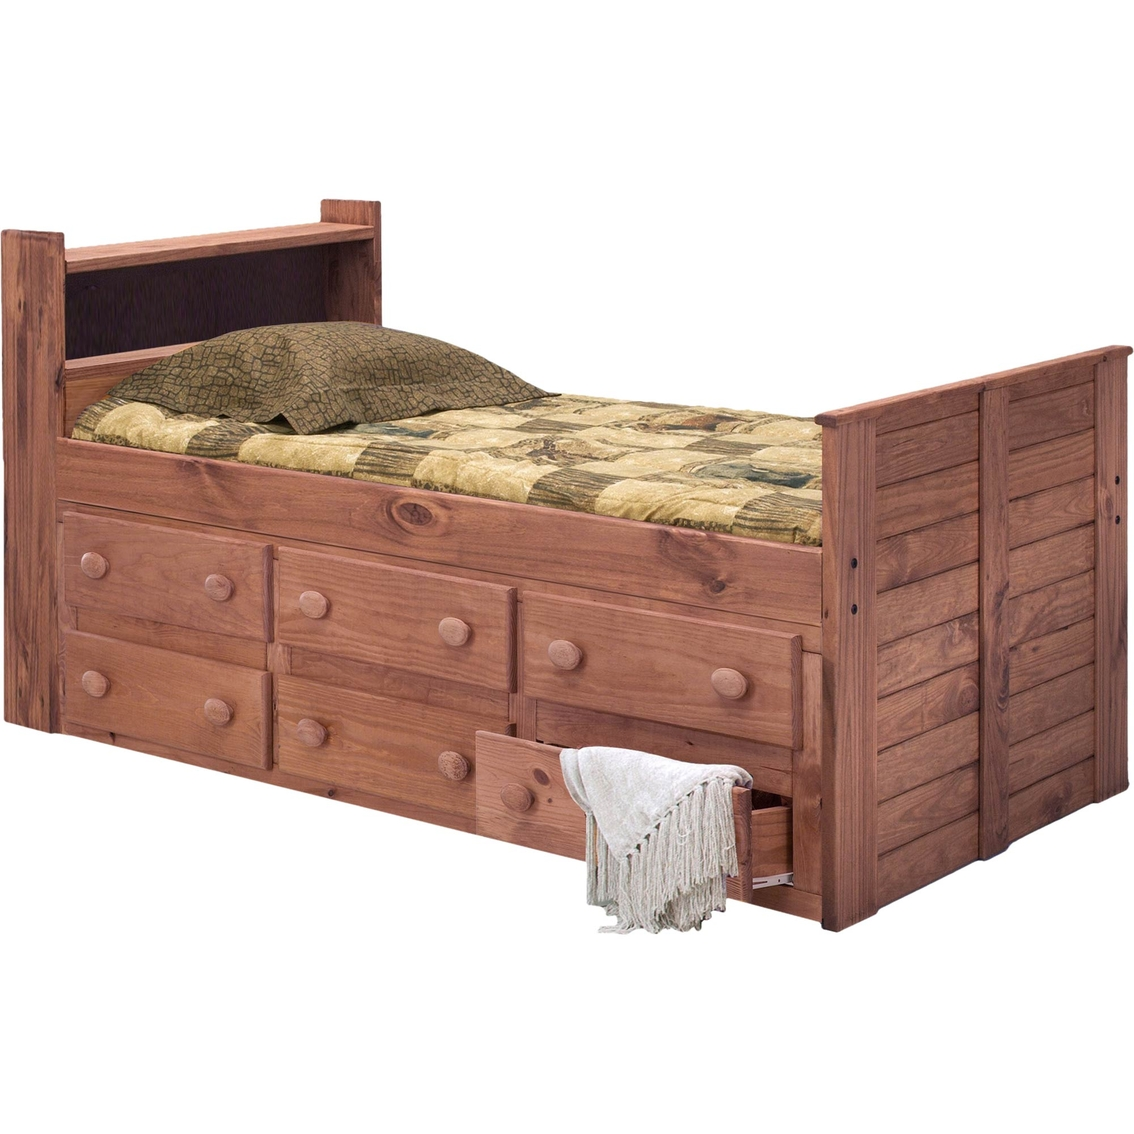 Chelsea Home Furniture Twin Bookcase Captain Bed With 6 Drawers Bedroom Furniture Home